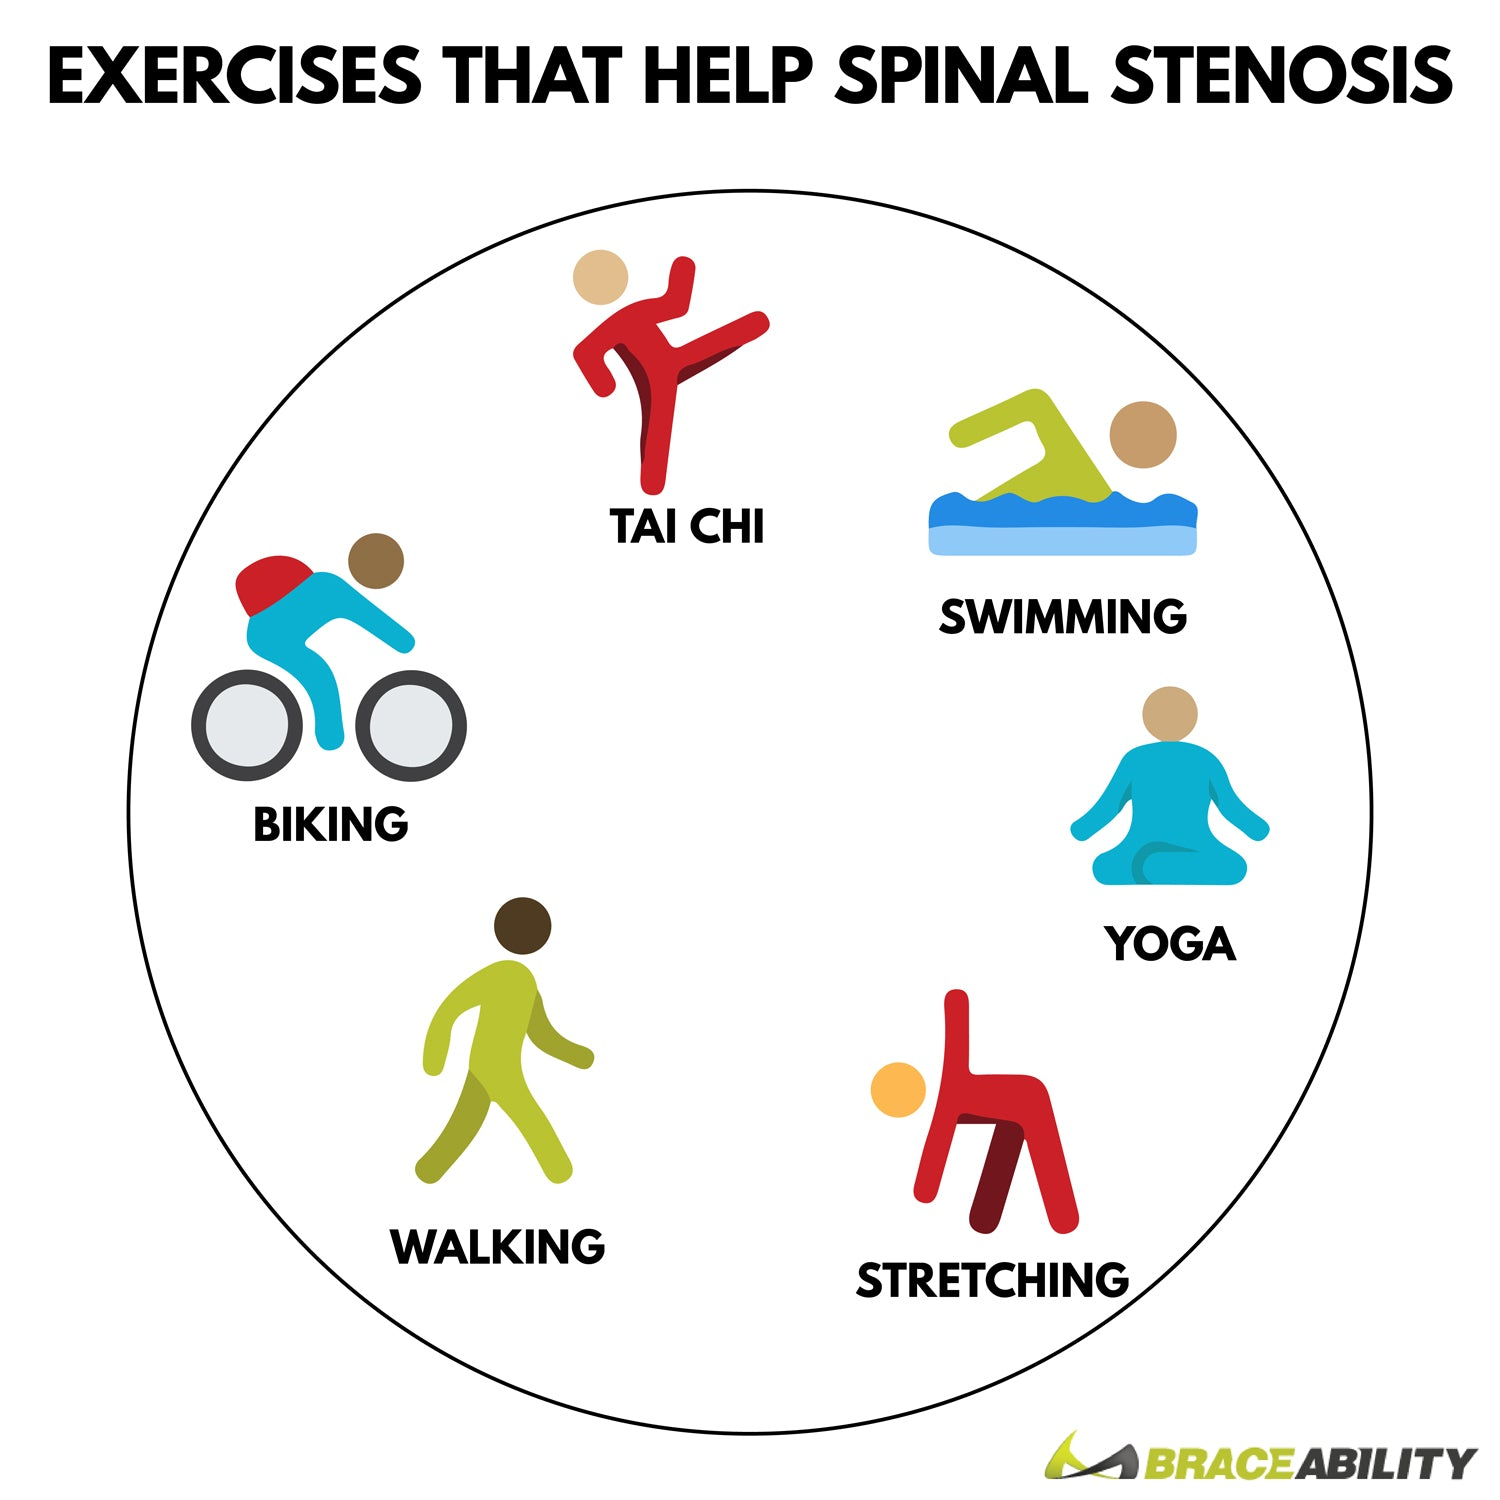 exercises that help with spinal stenosis and can prevent the need for surgery